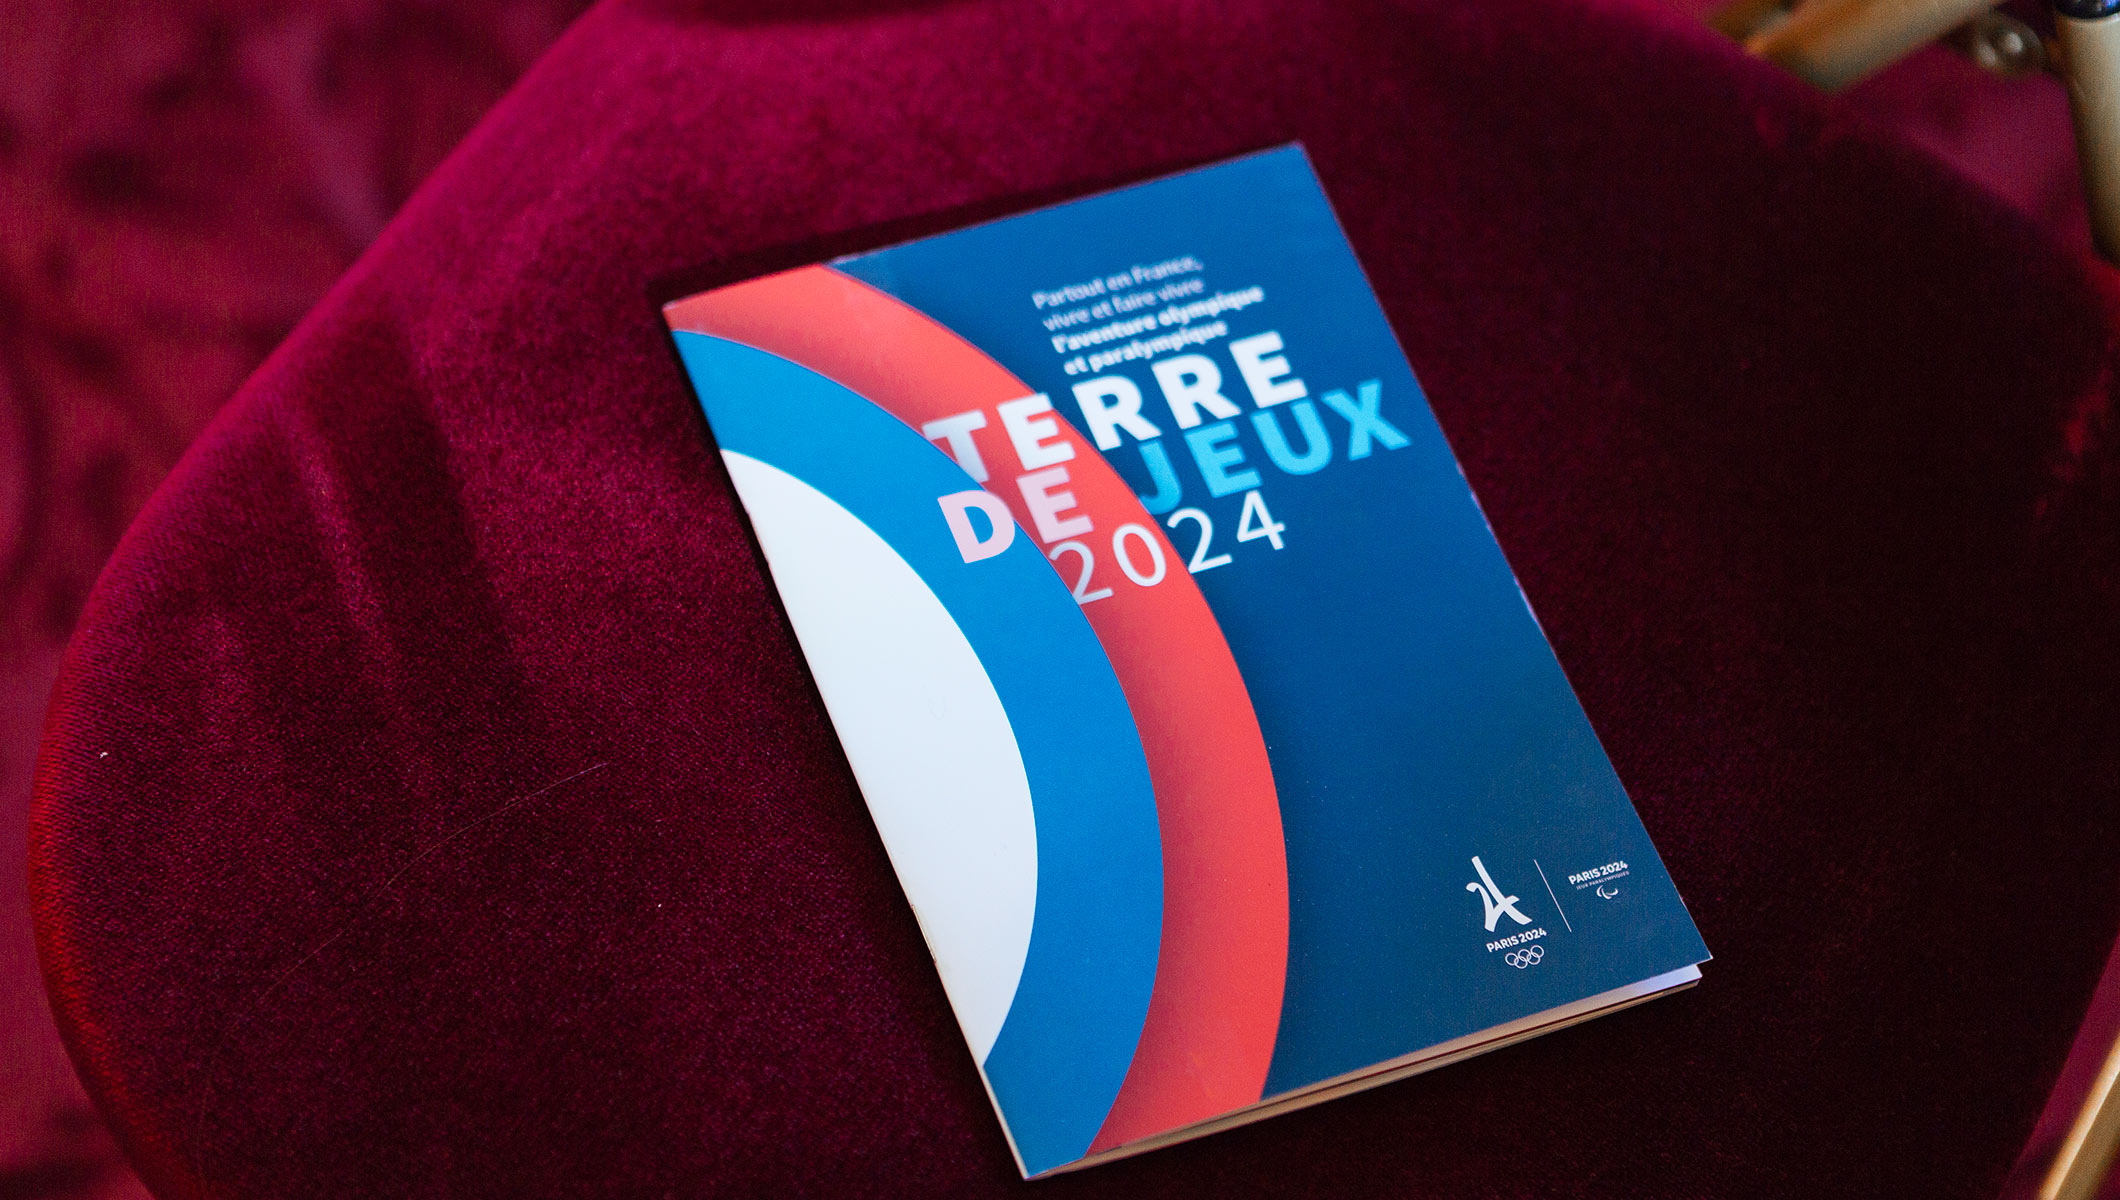 Paris 2024 Summer Olympics - Summer Olympic Games in France